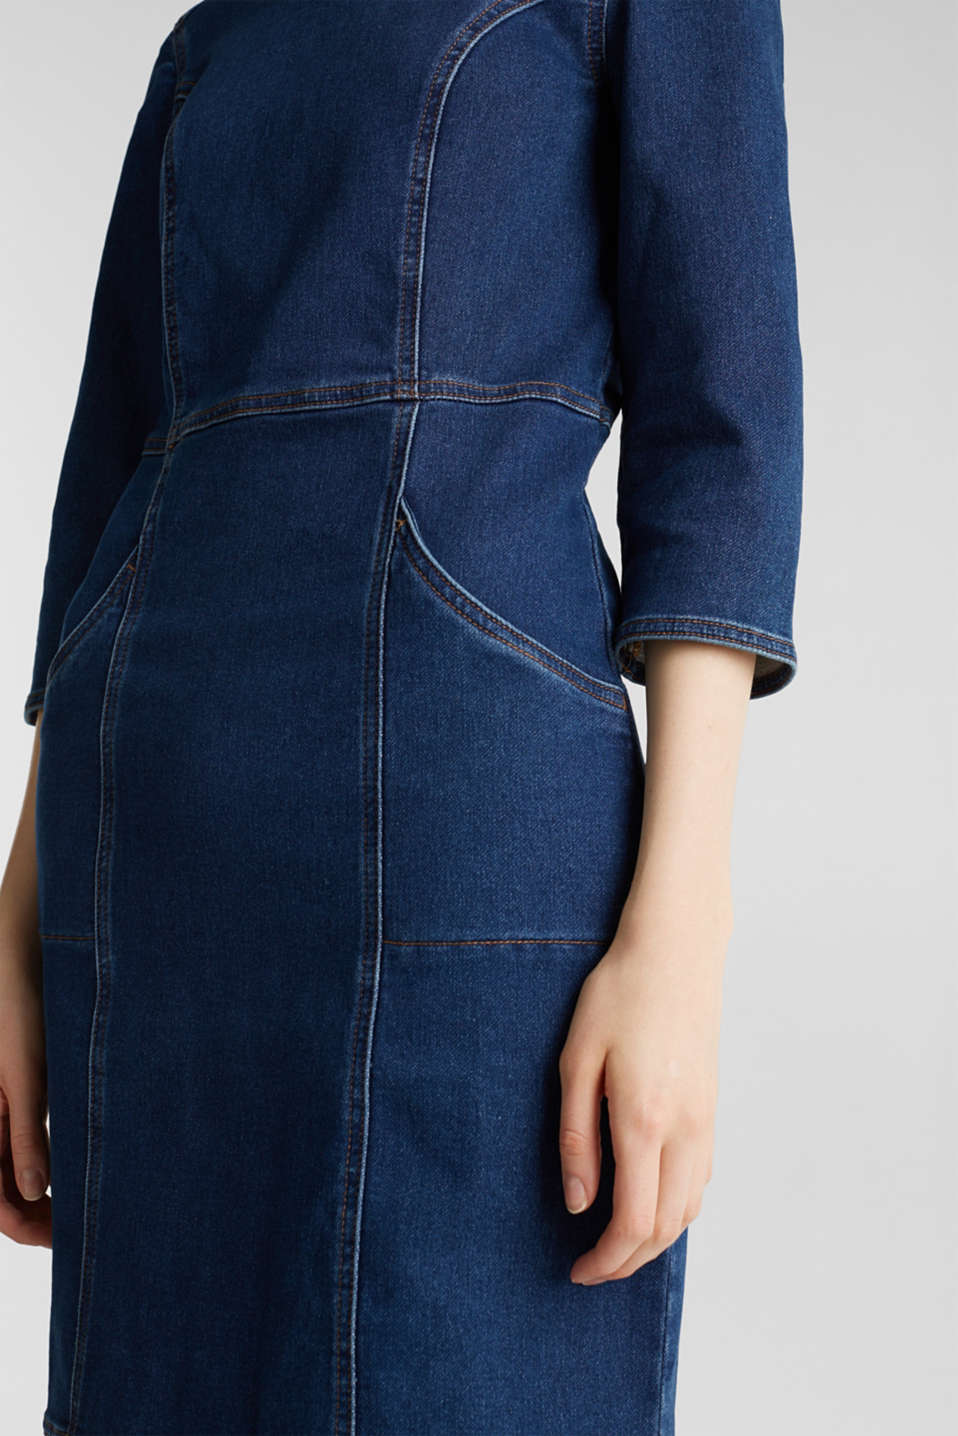 Stretch denim dress in tracksuit fabric, BLUE DARK WASH, detail image number 5